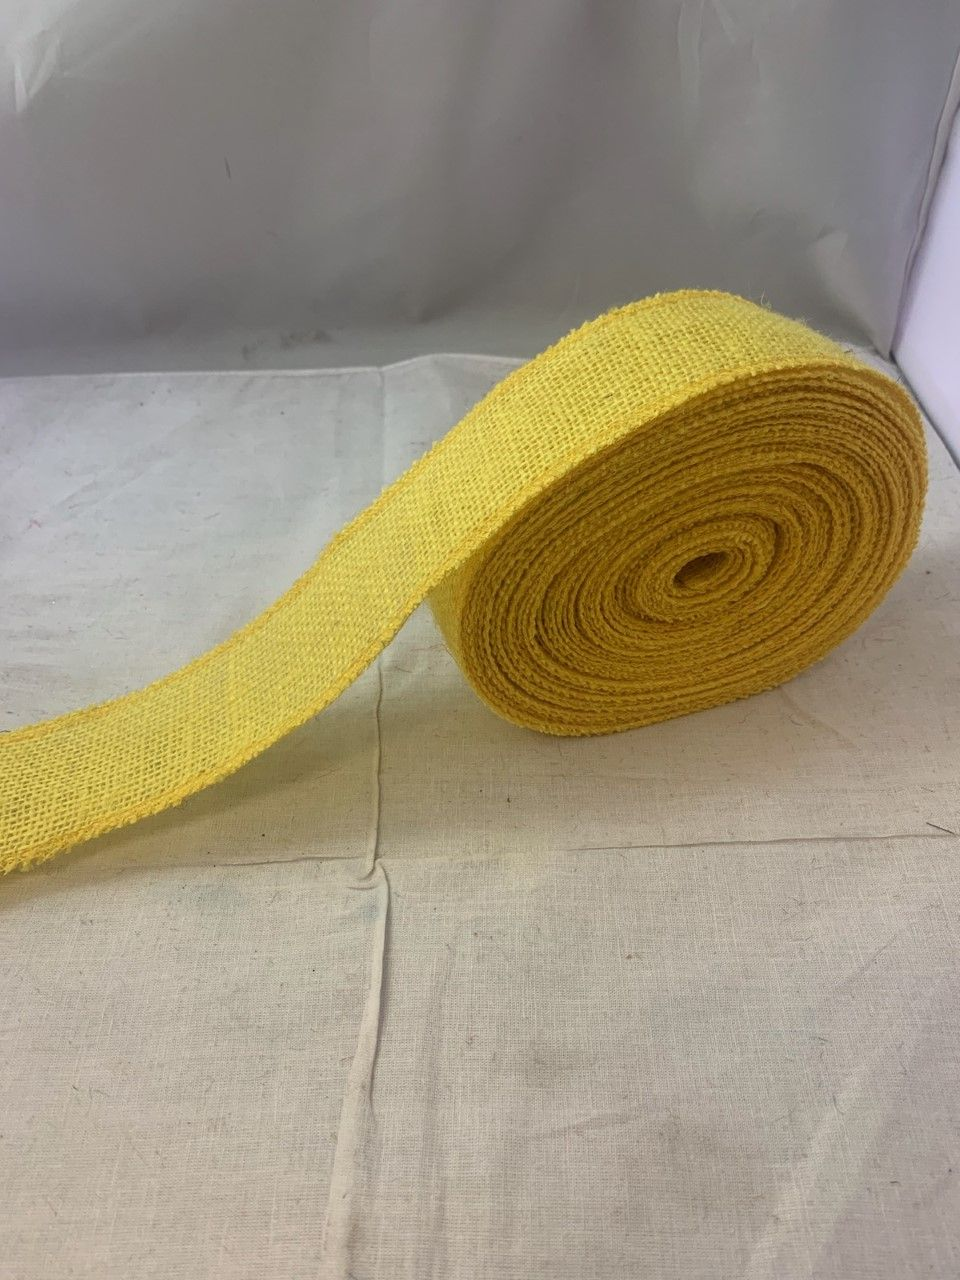 2 Candy Corn Burlap Ribbon 10 Yards Serged Made In Usa In 2020 Burlap Ribbon Candy Corn Burlap